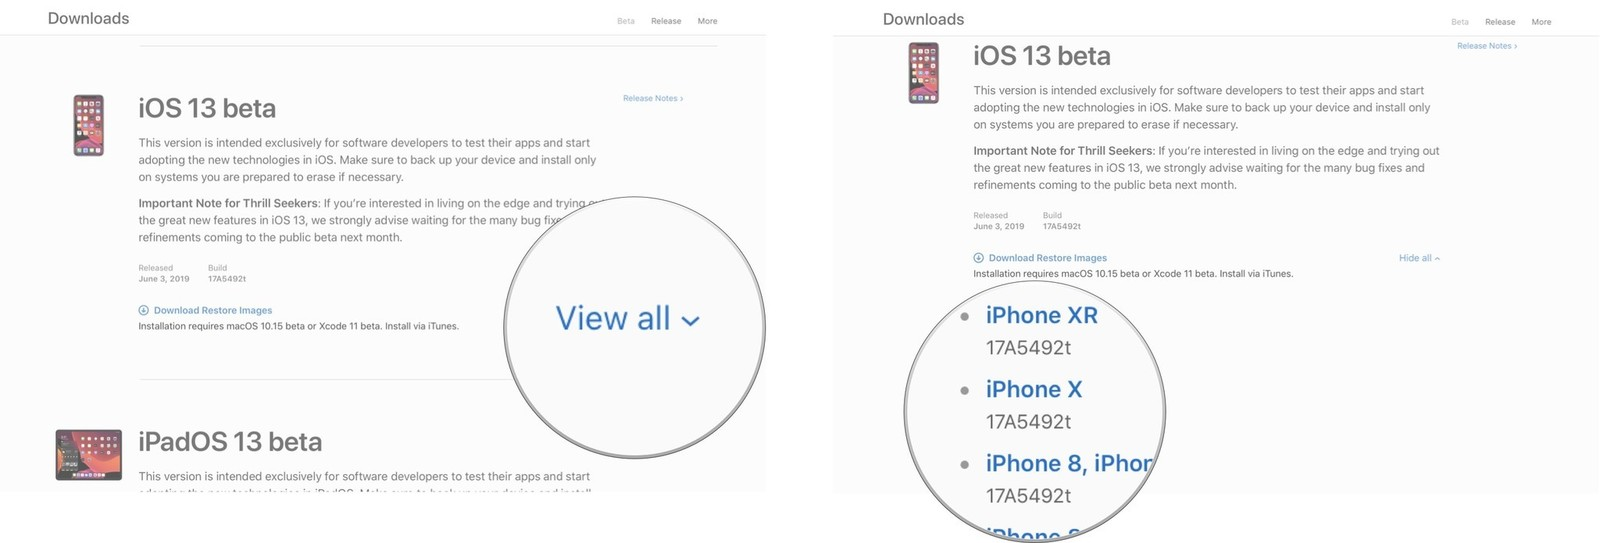 How to install an iOS beta on your iPhone or iPad using